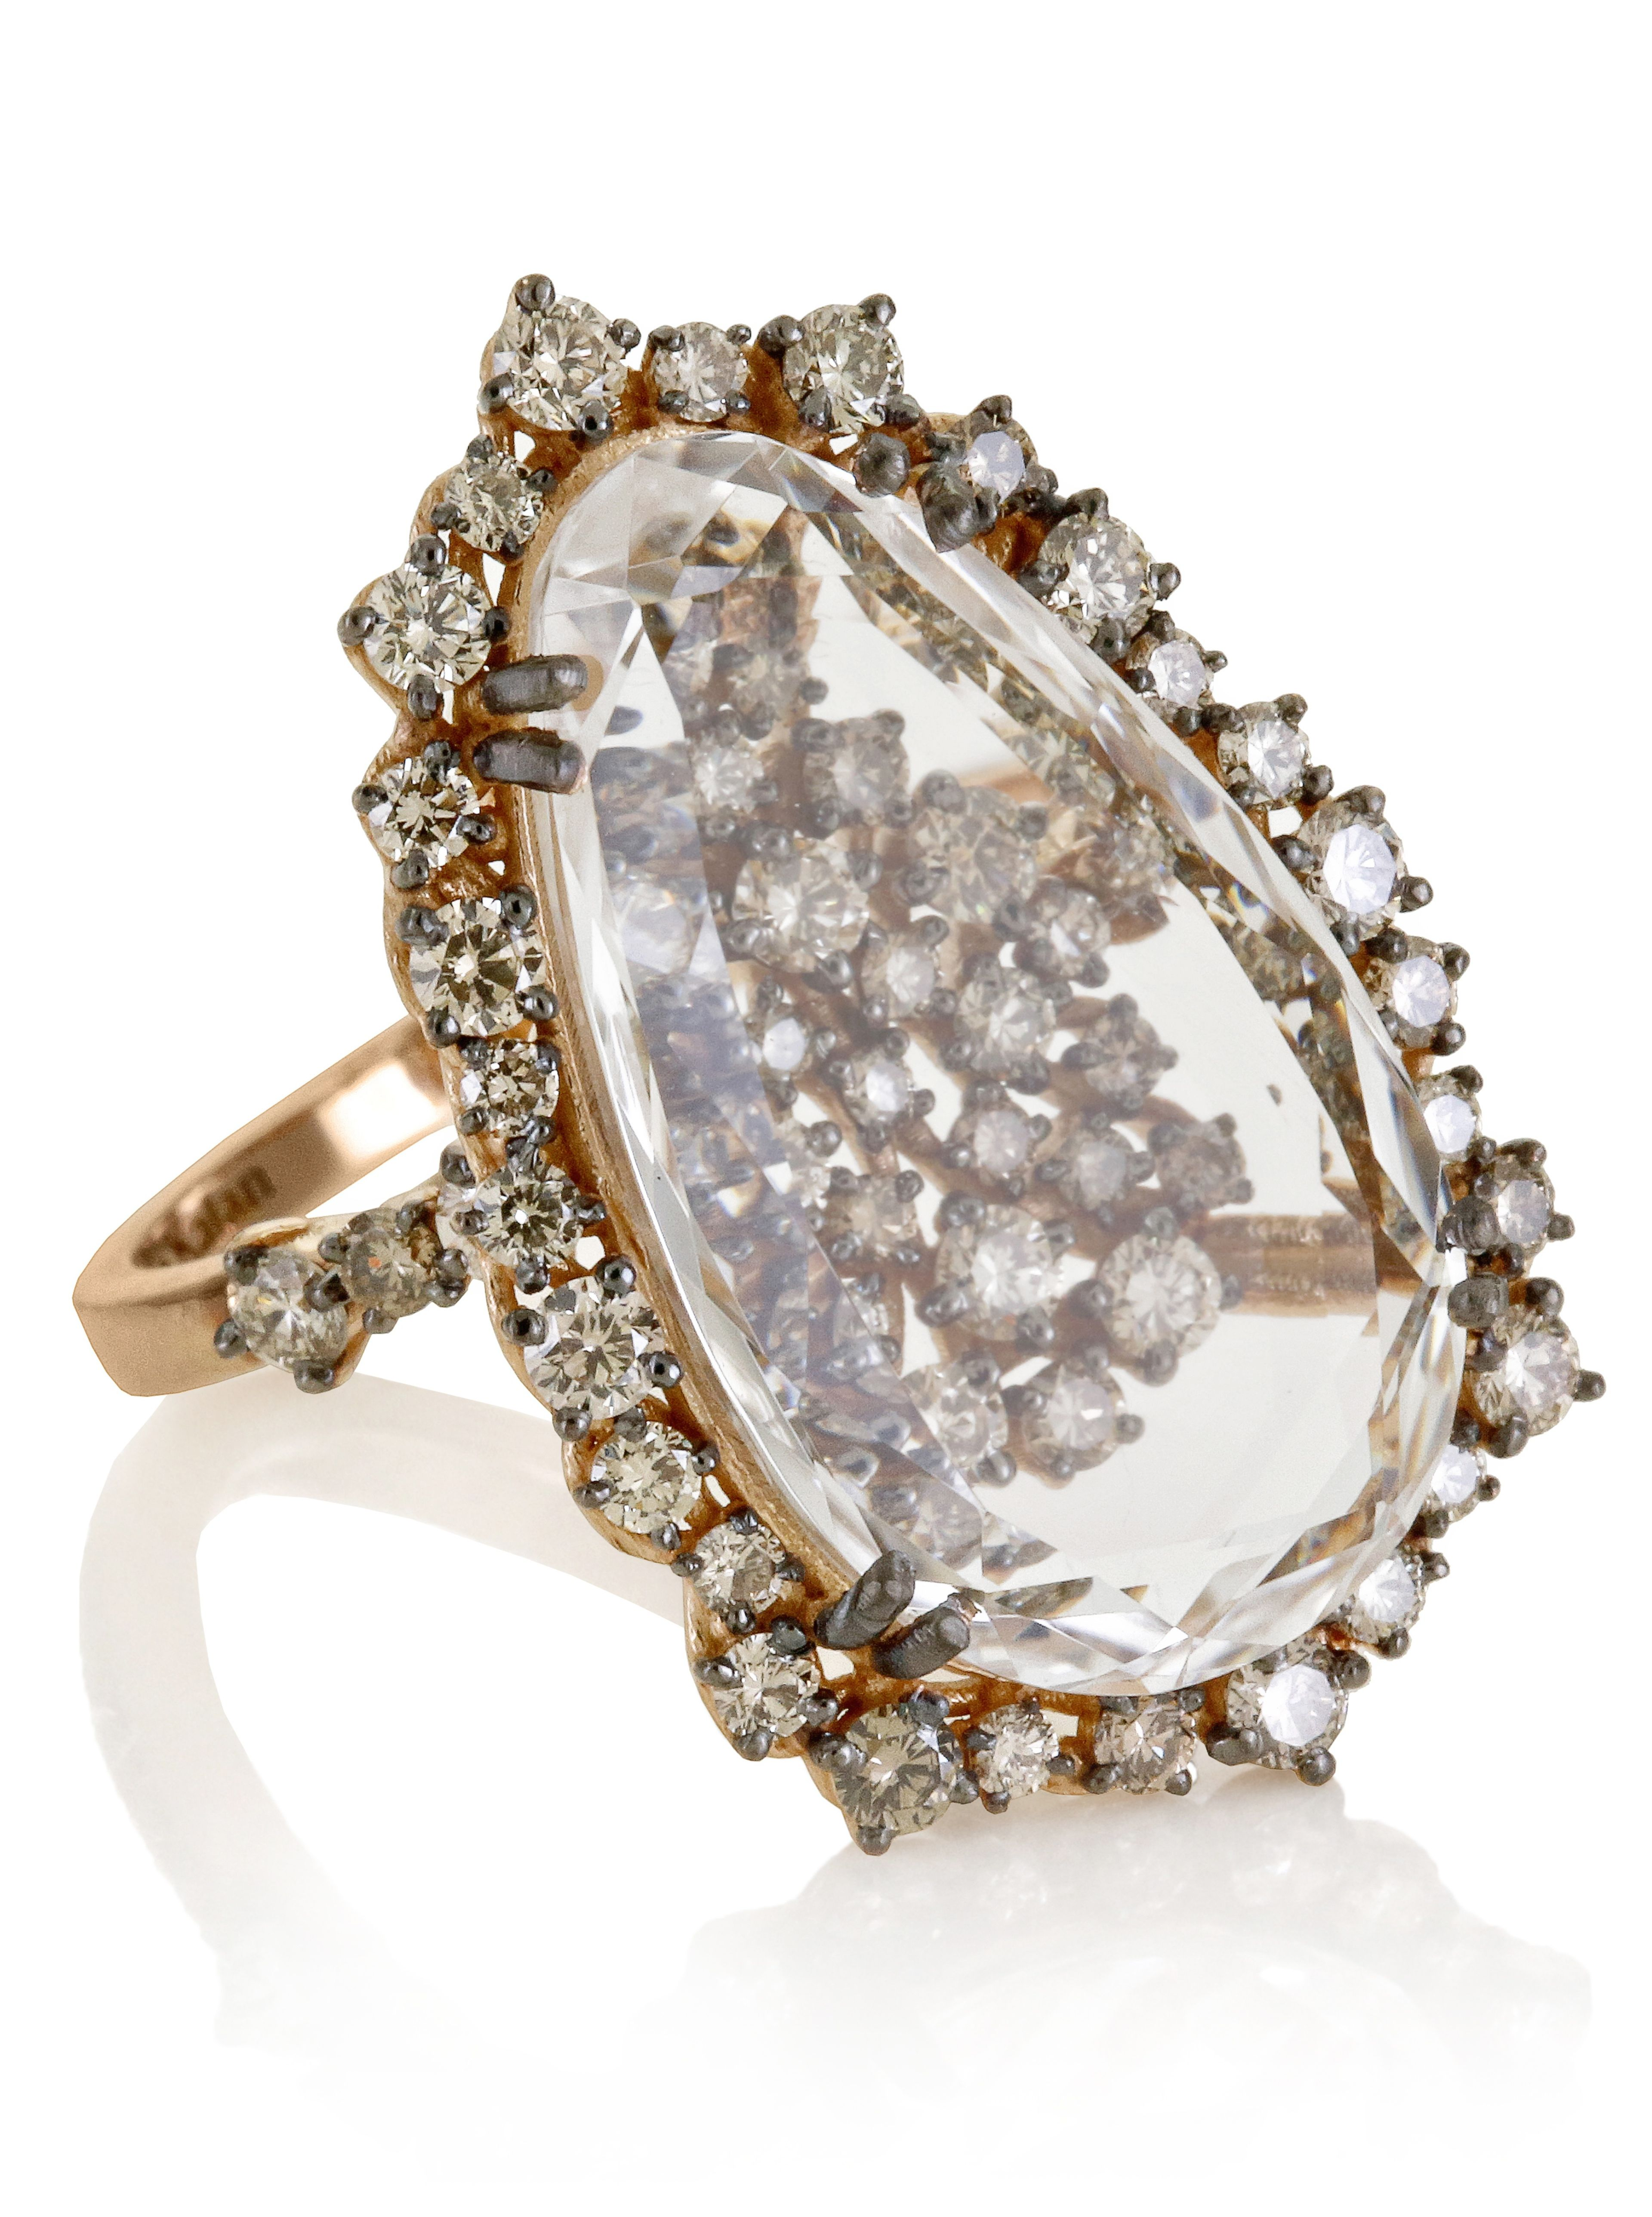 Image source: http://idazzle.com/2015/03/26/diamonds-with-a-story-new-designer-collections-from-dawes-design-sandy-leong-suzanne-kalan-and-matthew-campbell-laurenza/ last access 1st September 2016